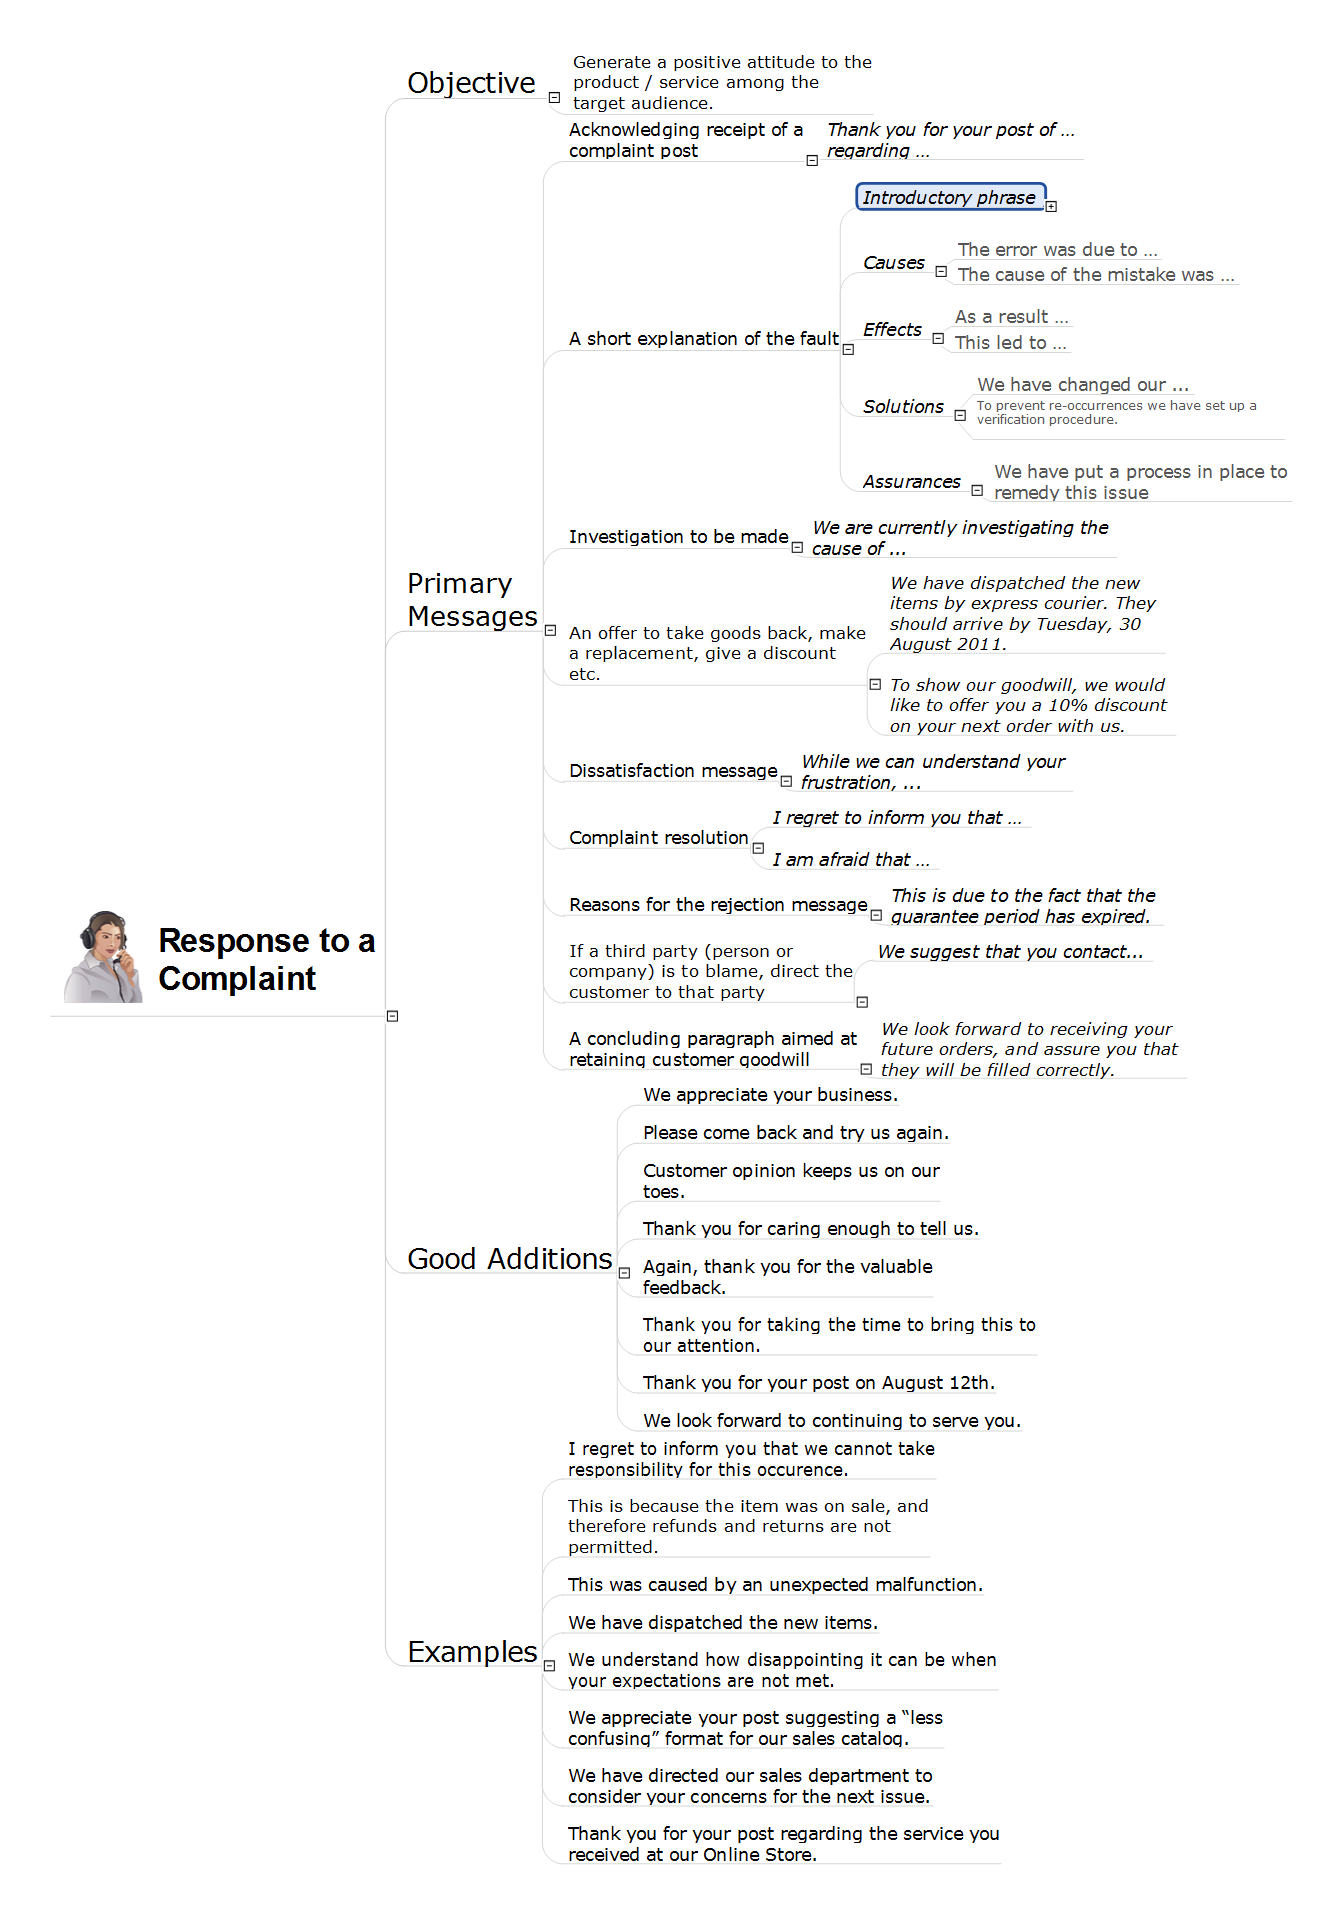 Response To Complaint Flowchart On Bank Flowchart Examples